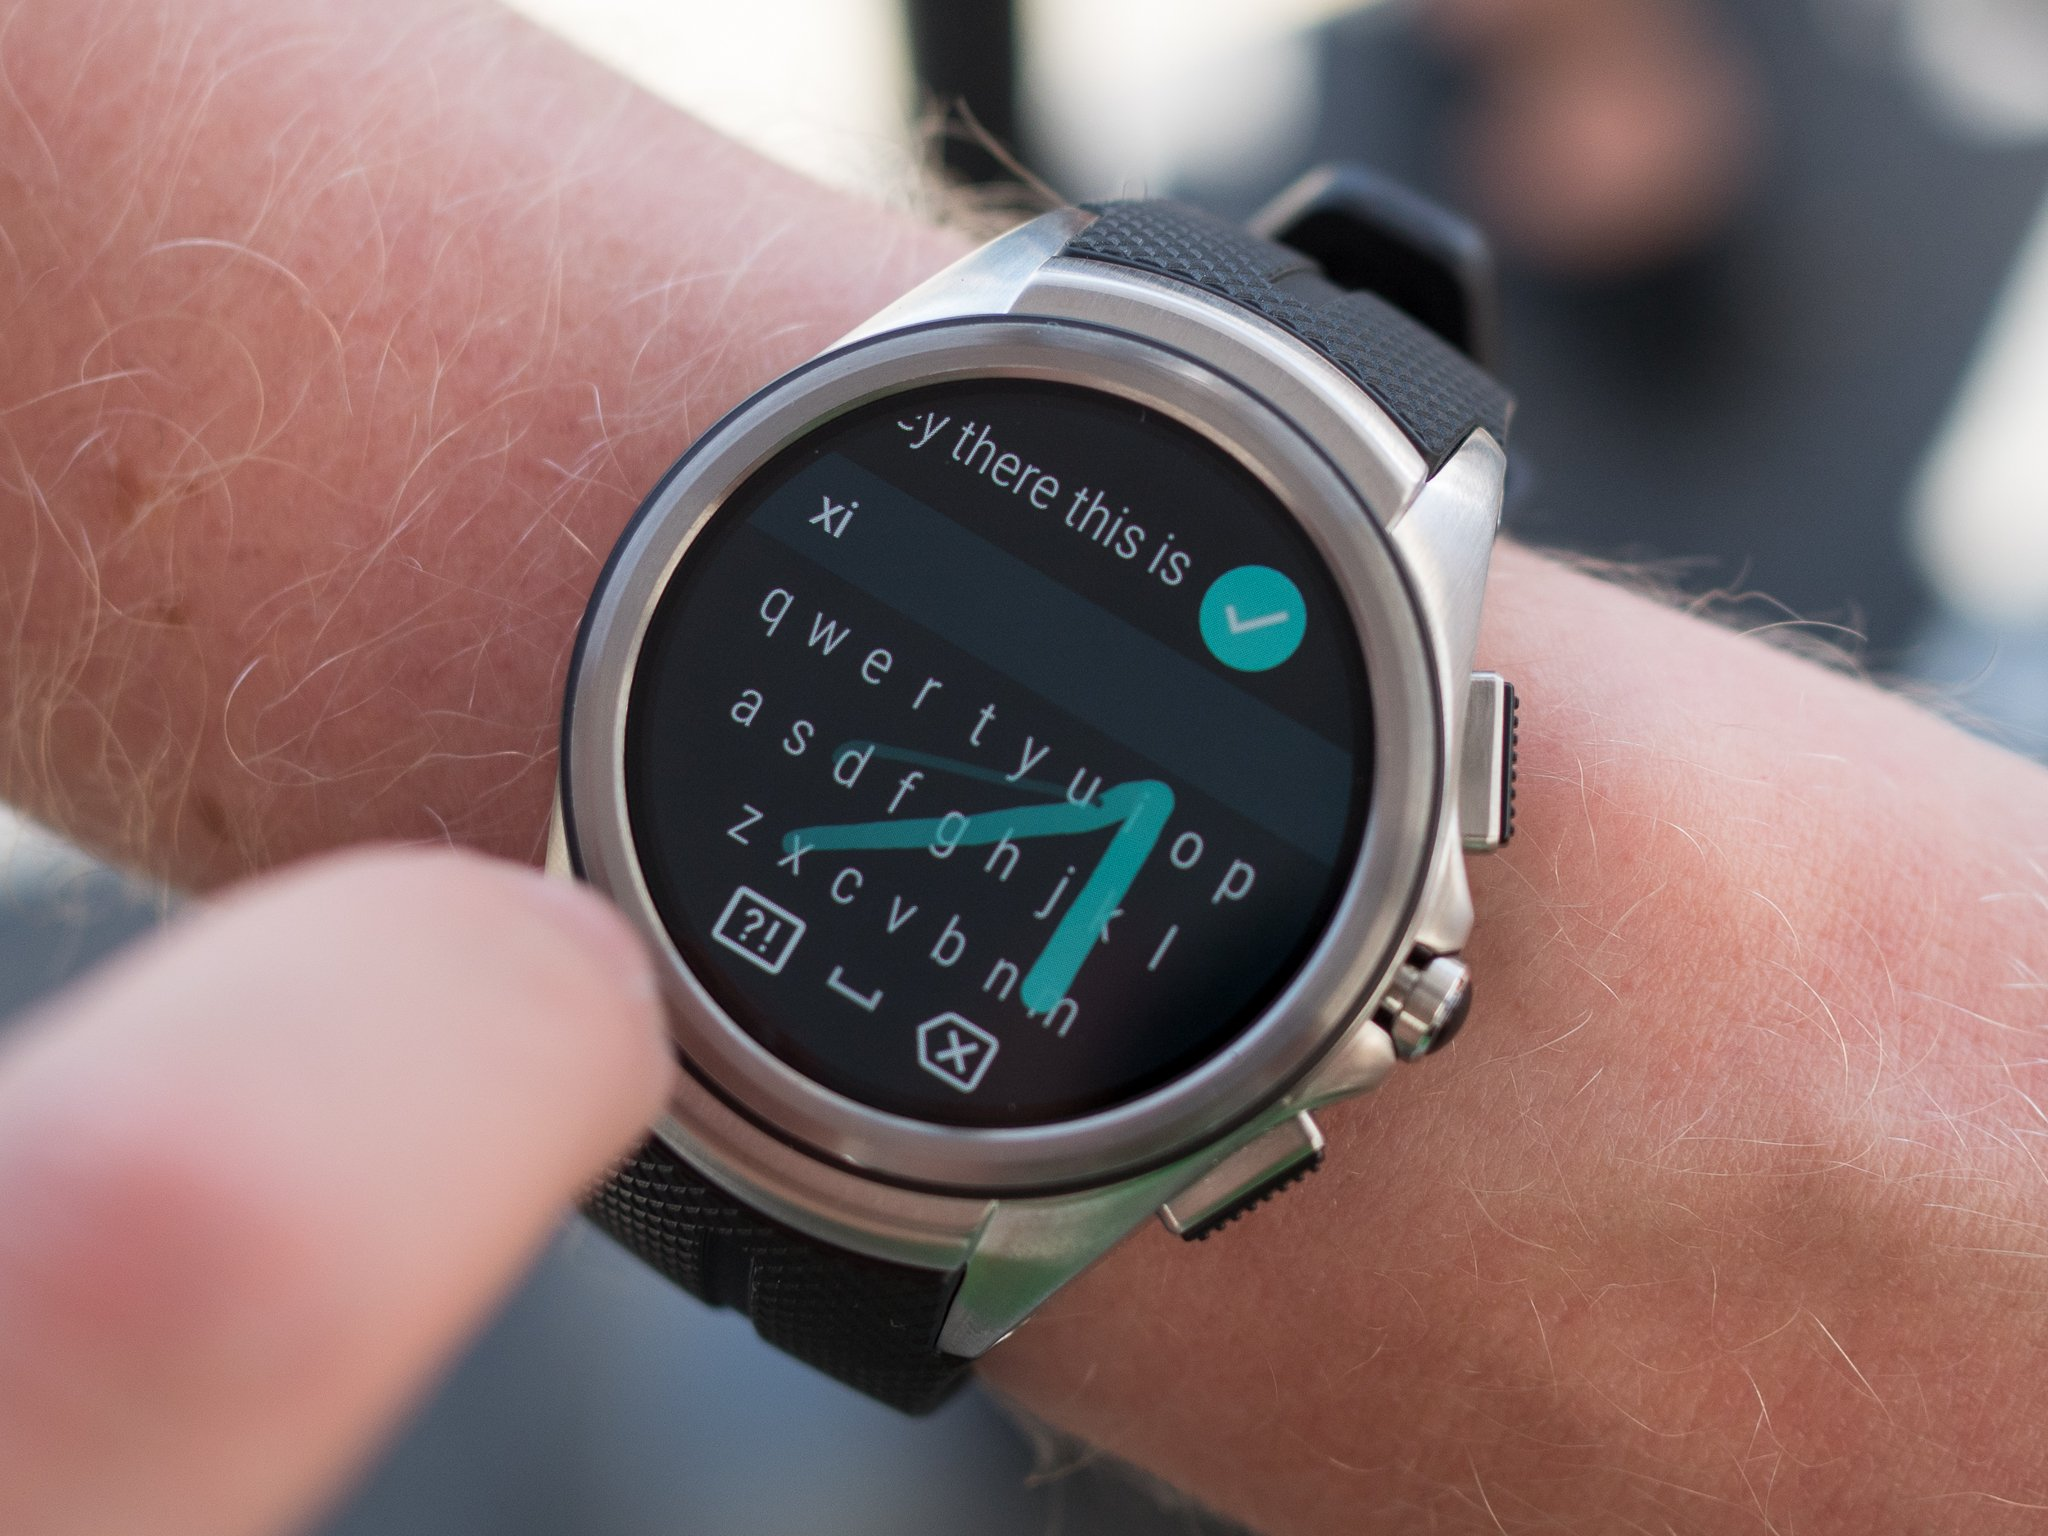 samsung smartwatch g3 frontier manual free download